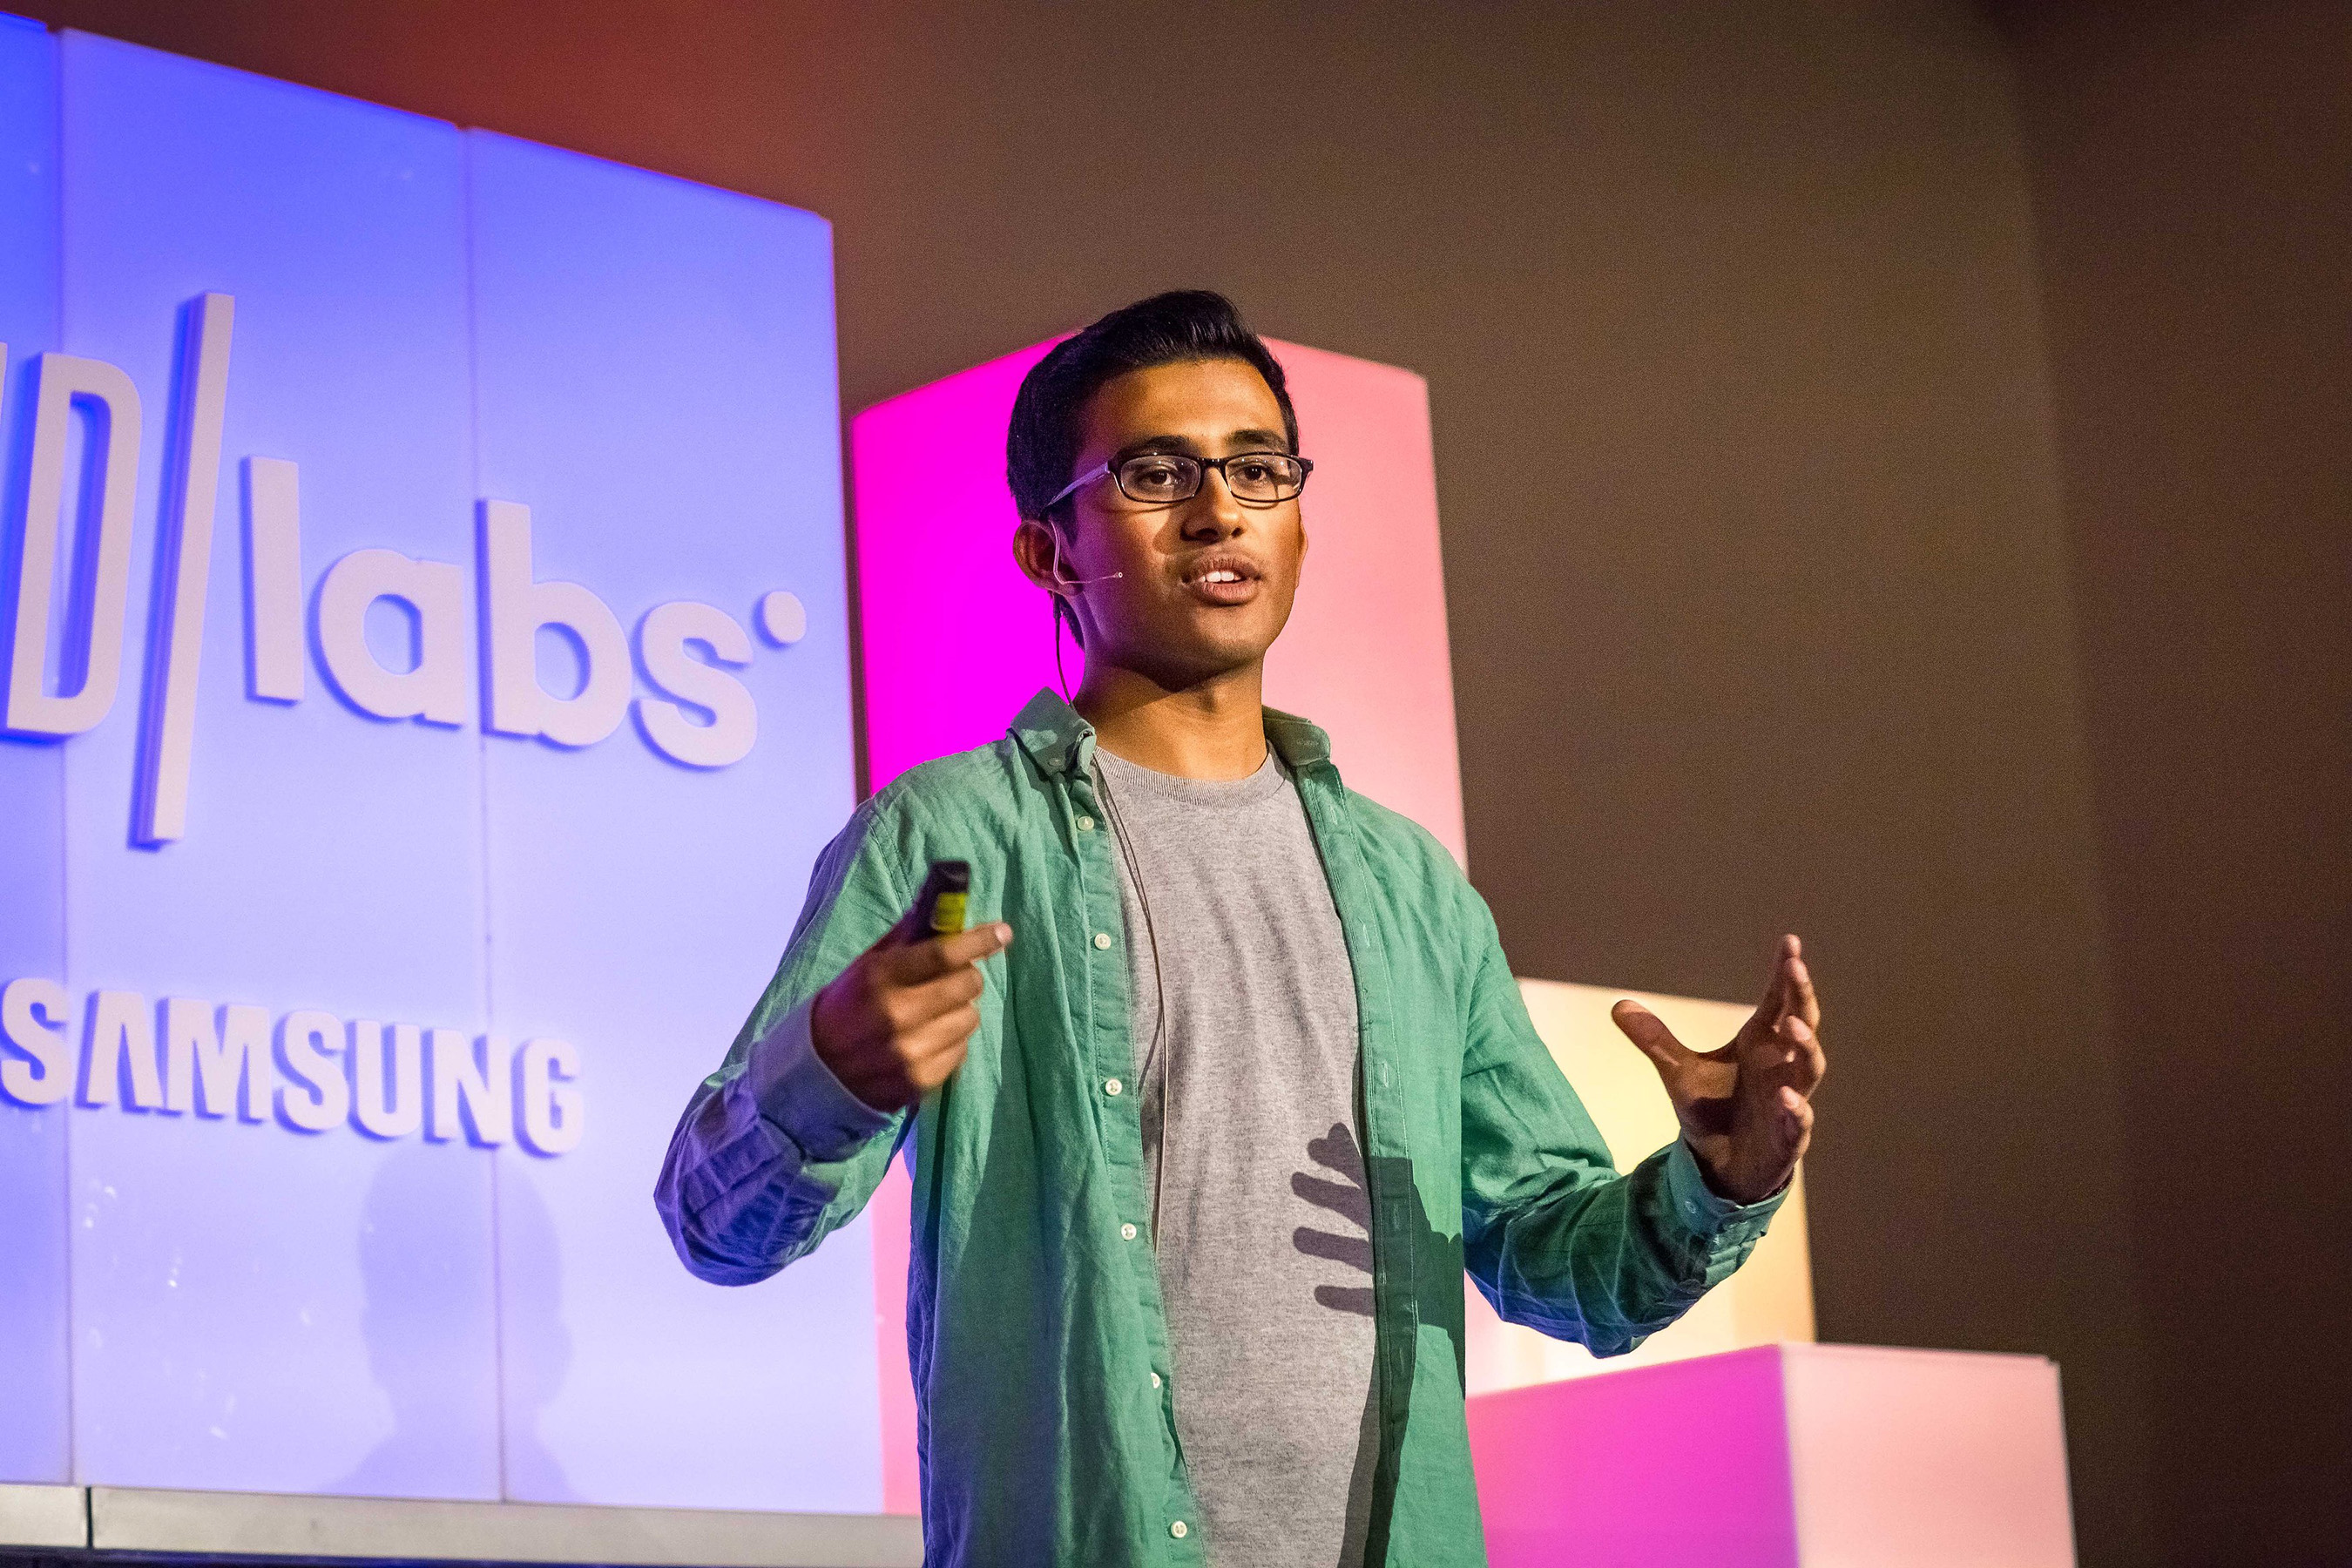 Arjun discusses how his innovation program at USC Jimmy Iovine and Andre Young Academy inspired his music startup